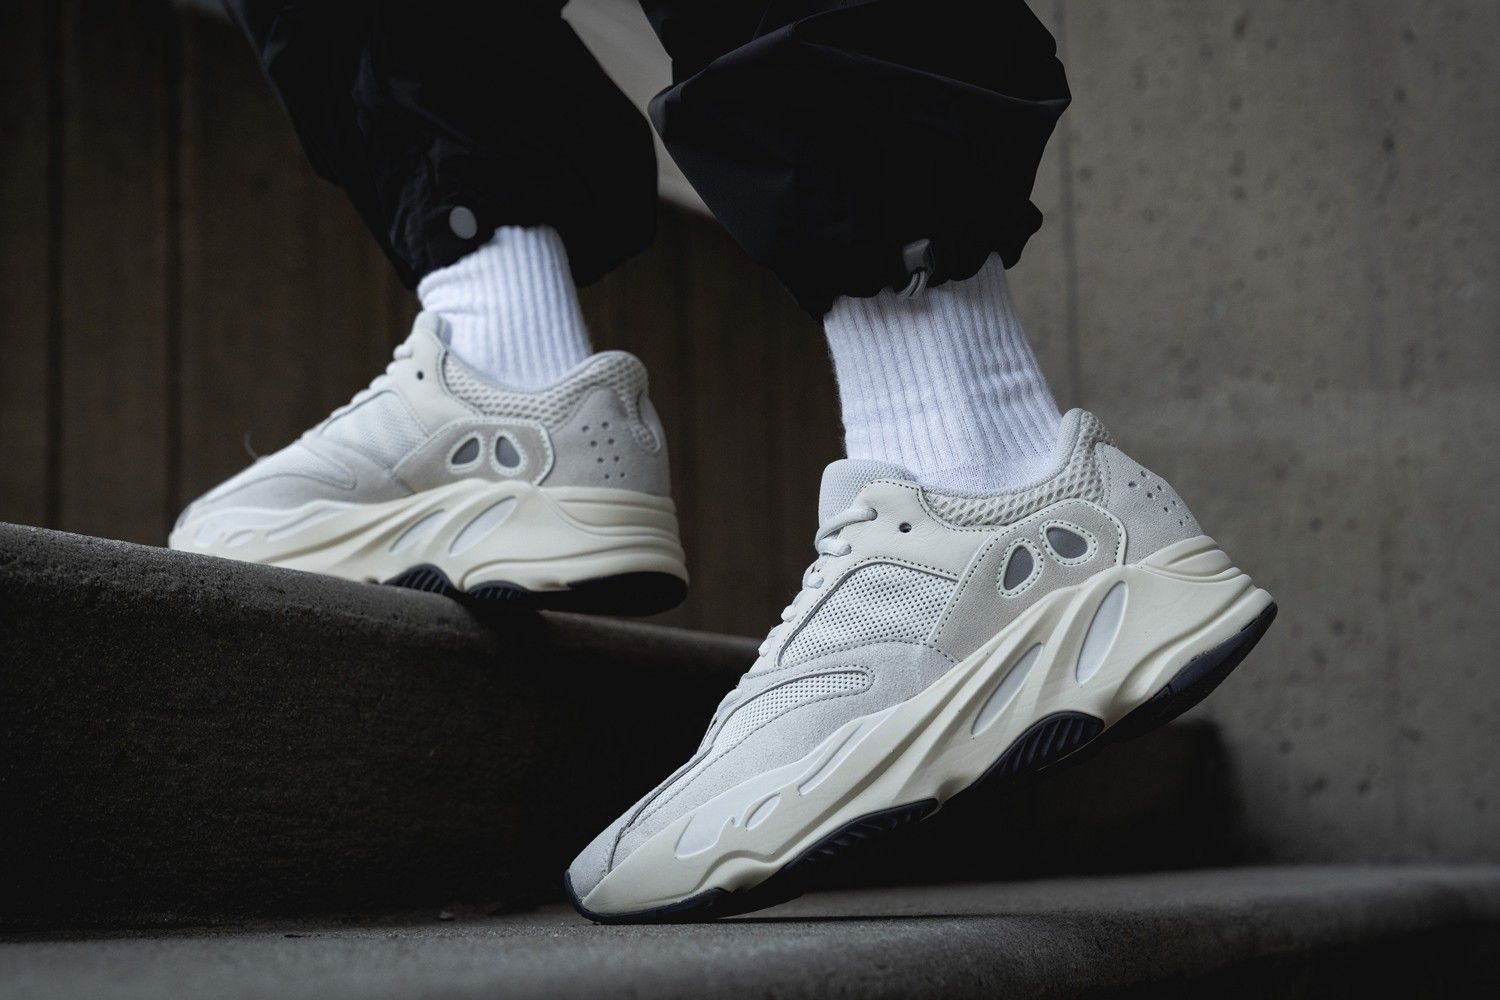 adidas Yeezy Boost 700 Analog Outfit On Foot Release Date EG7596